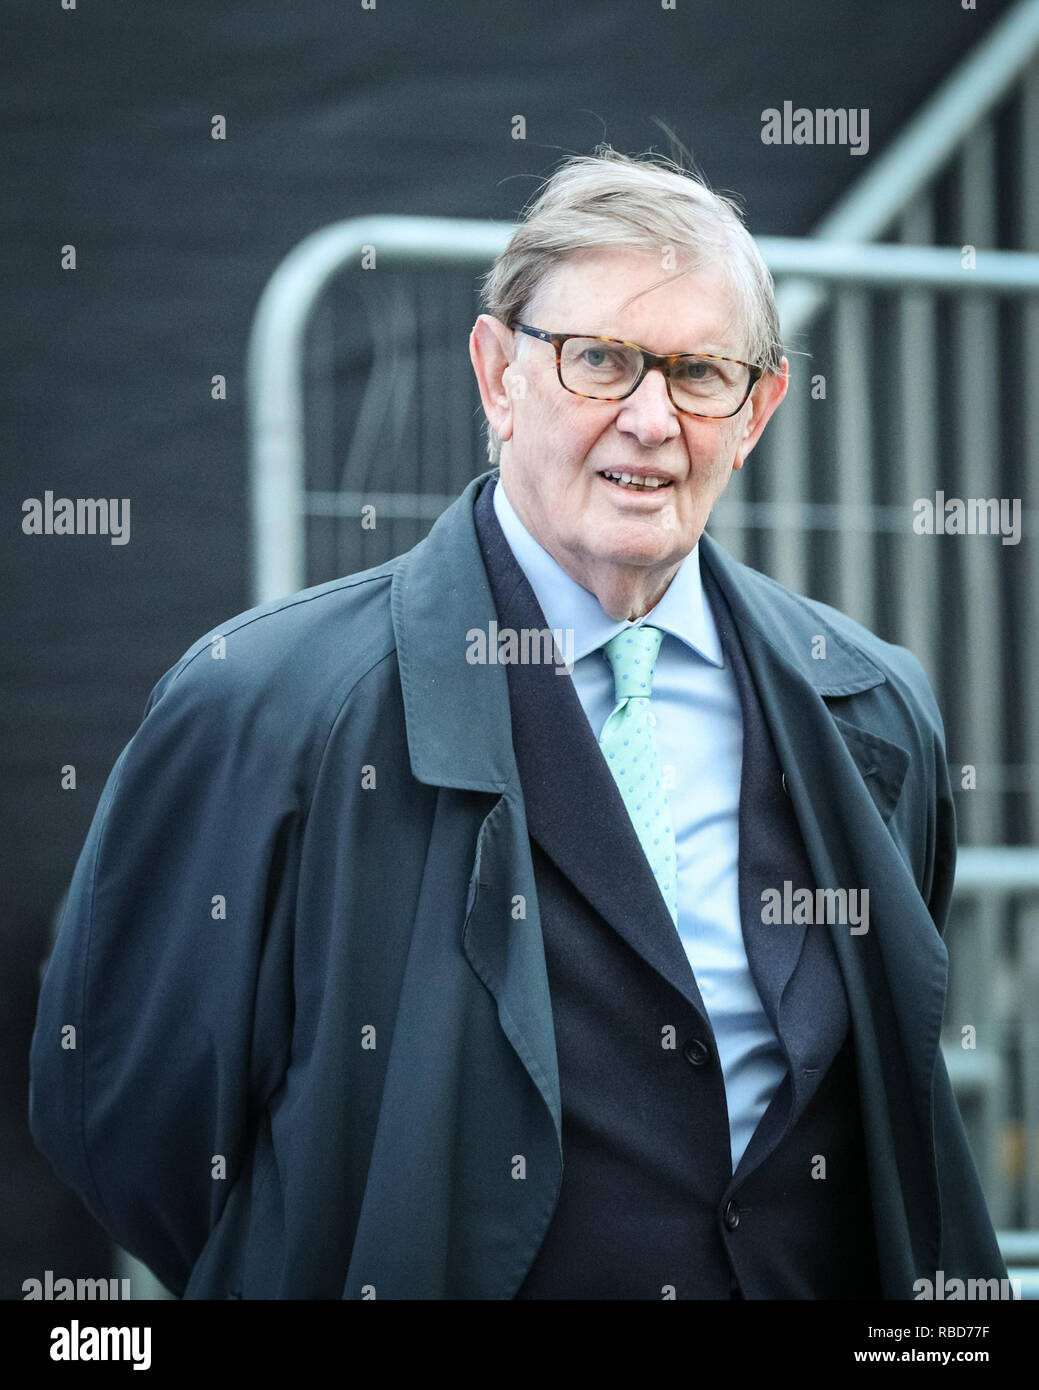 Westminster, London, 09th Jan 2019. Sir William (Bill) Cash, Conservative MP and prominent Eurosceptic. Politicians are interviewed on College Green to give their reactions to this afternoon's amendment vote in Parliament, which was lost by the government. Credit: Imageplotter News and Sports/Alamy Live News - Stock Image